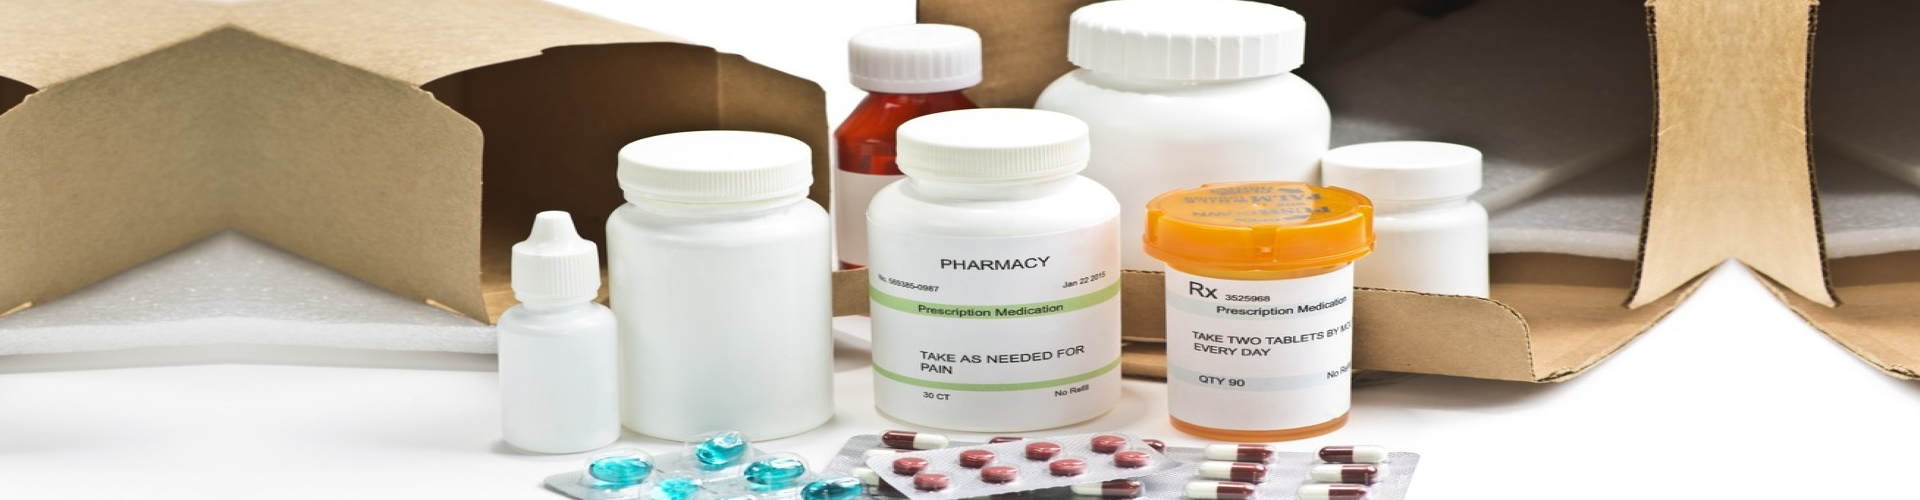 special packaging of medicines